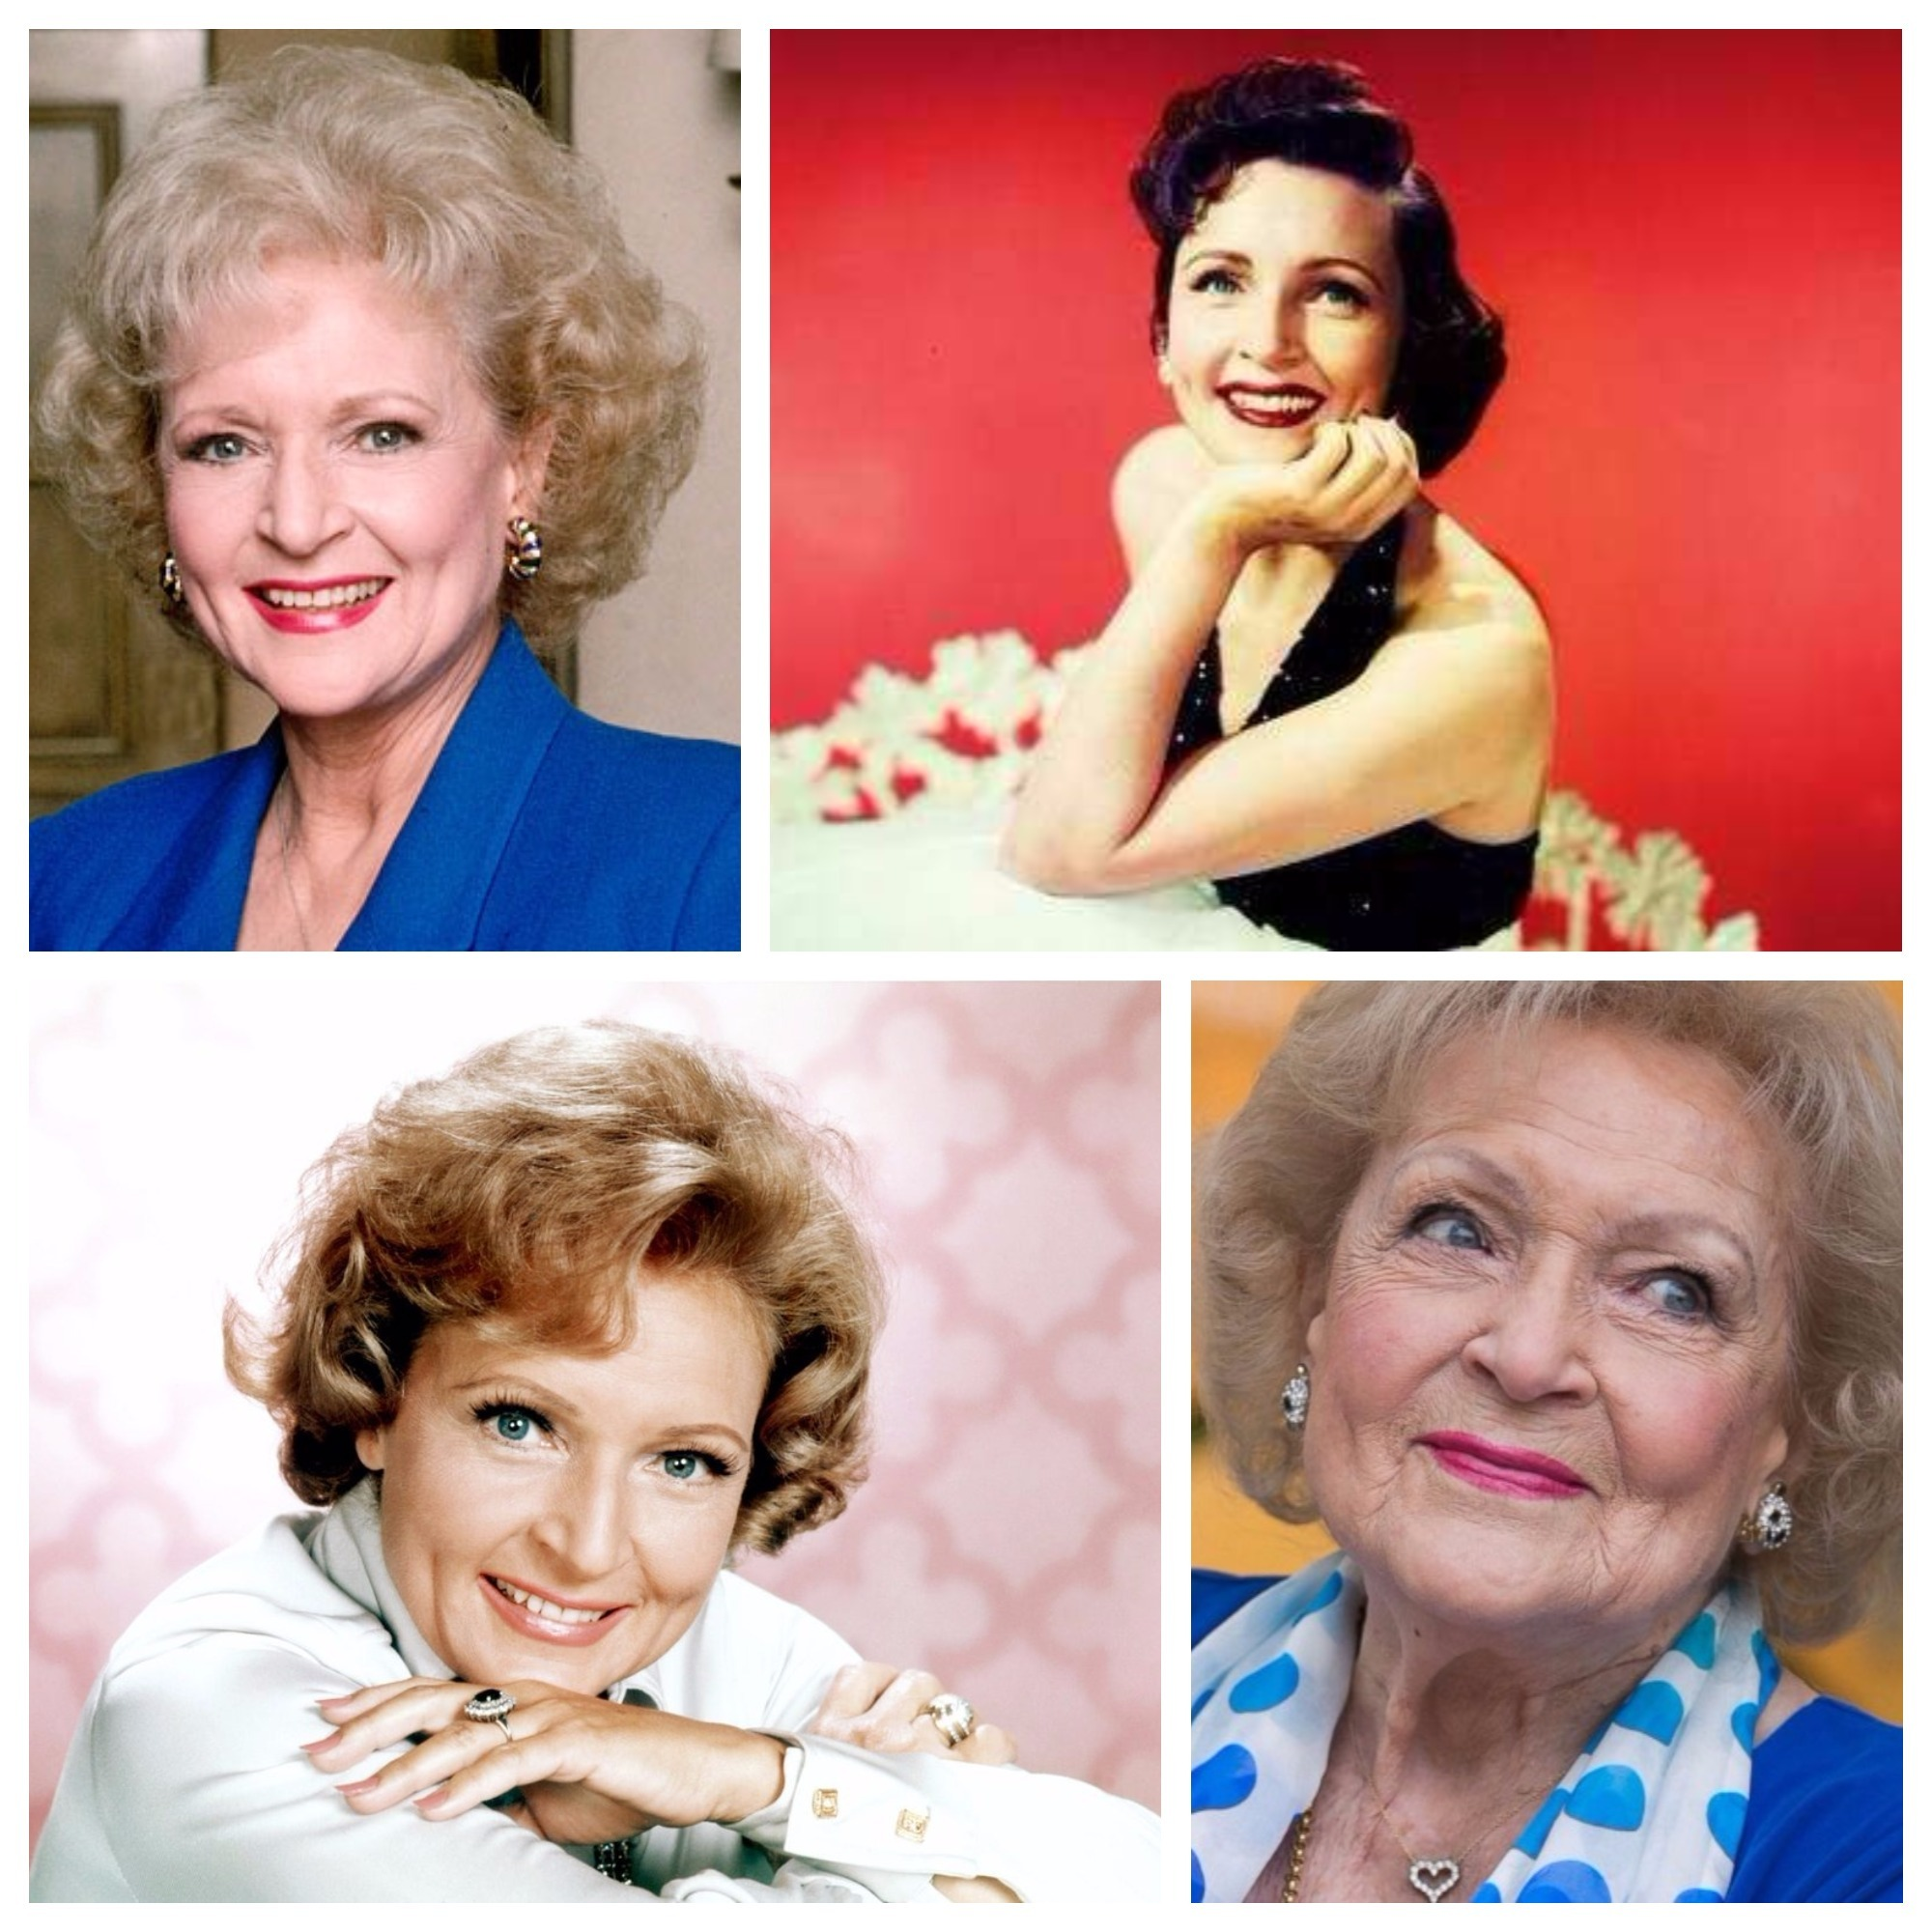 betty white, The Golden Girls, The Golden Girls then and now, what do the Golden Girls Look like now, celebs, movies/tv